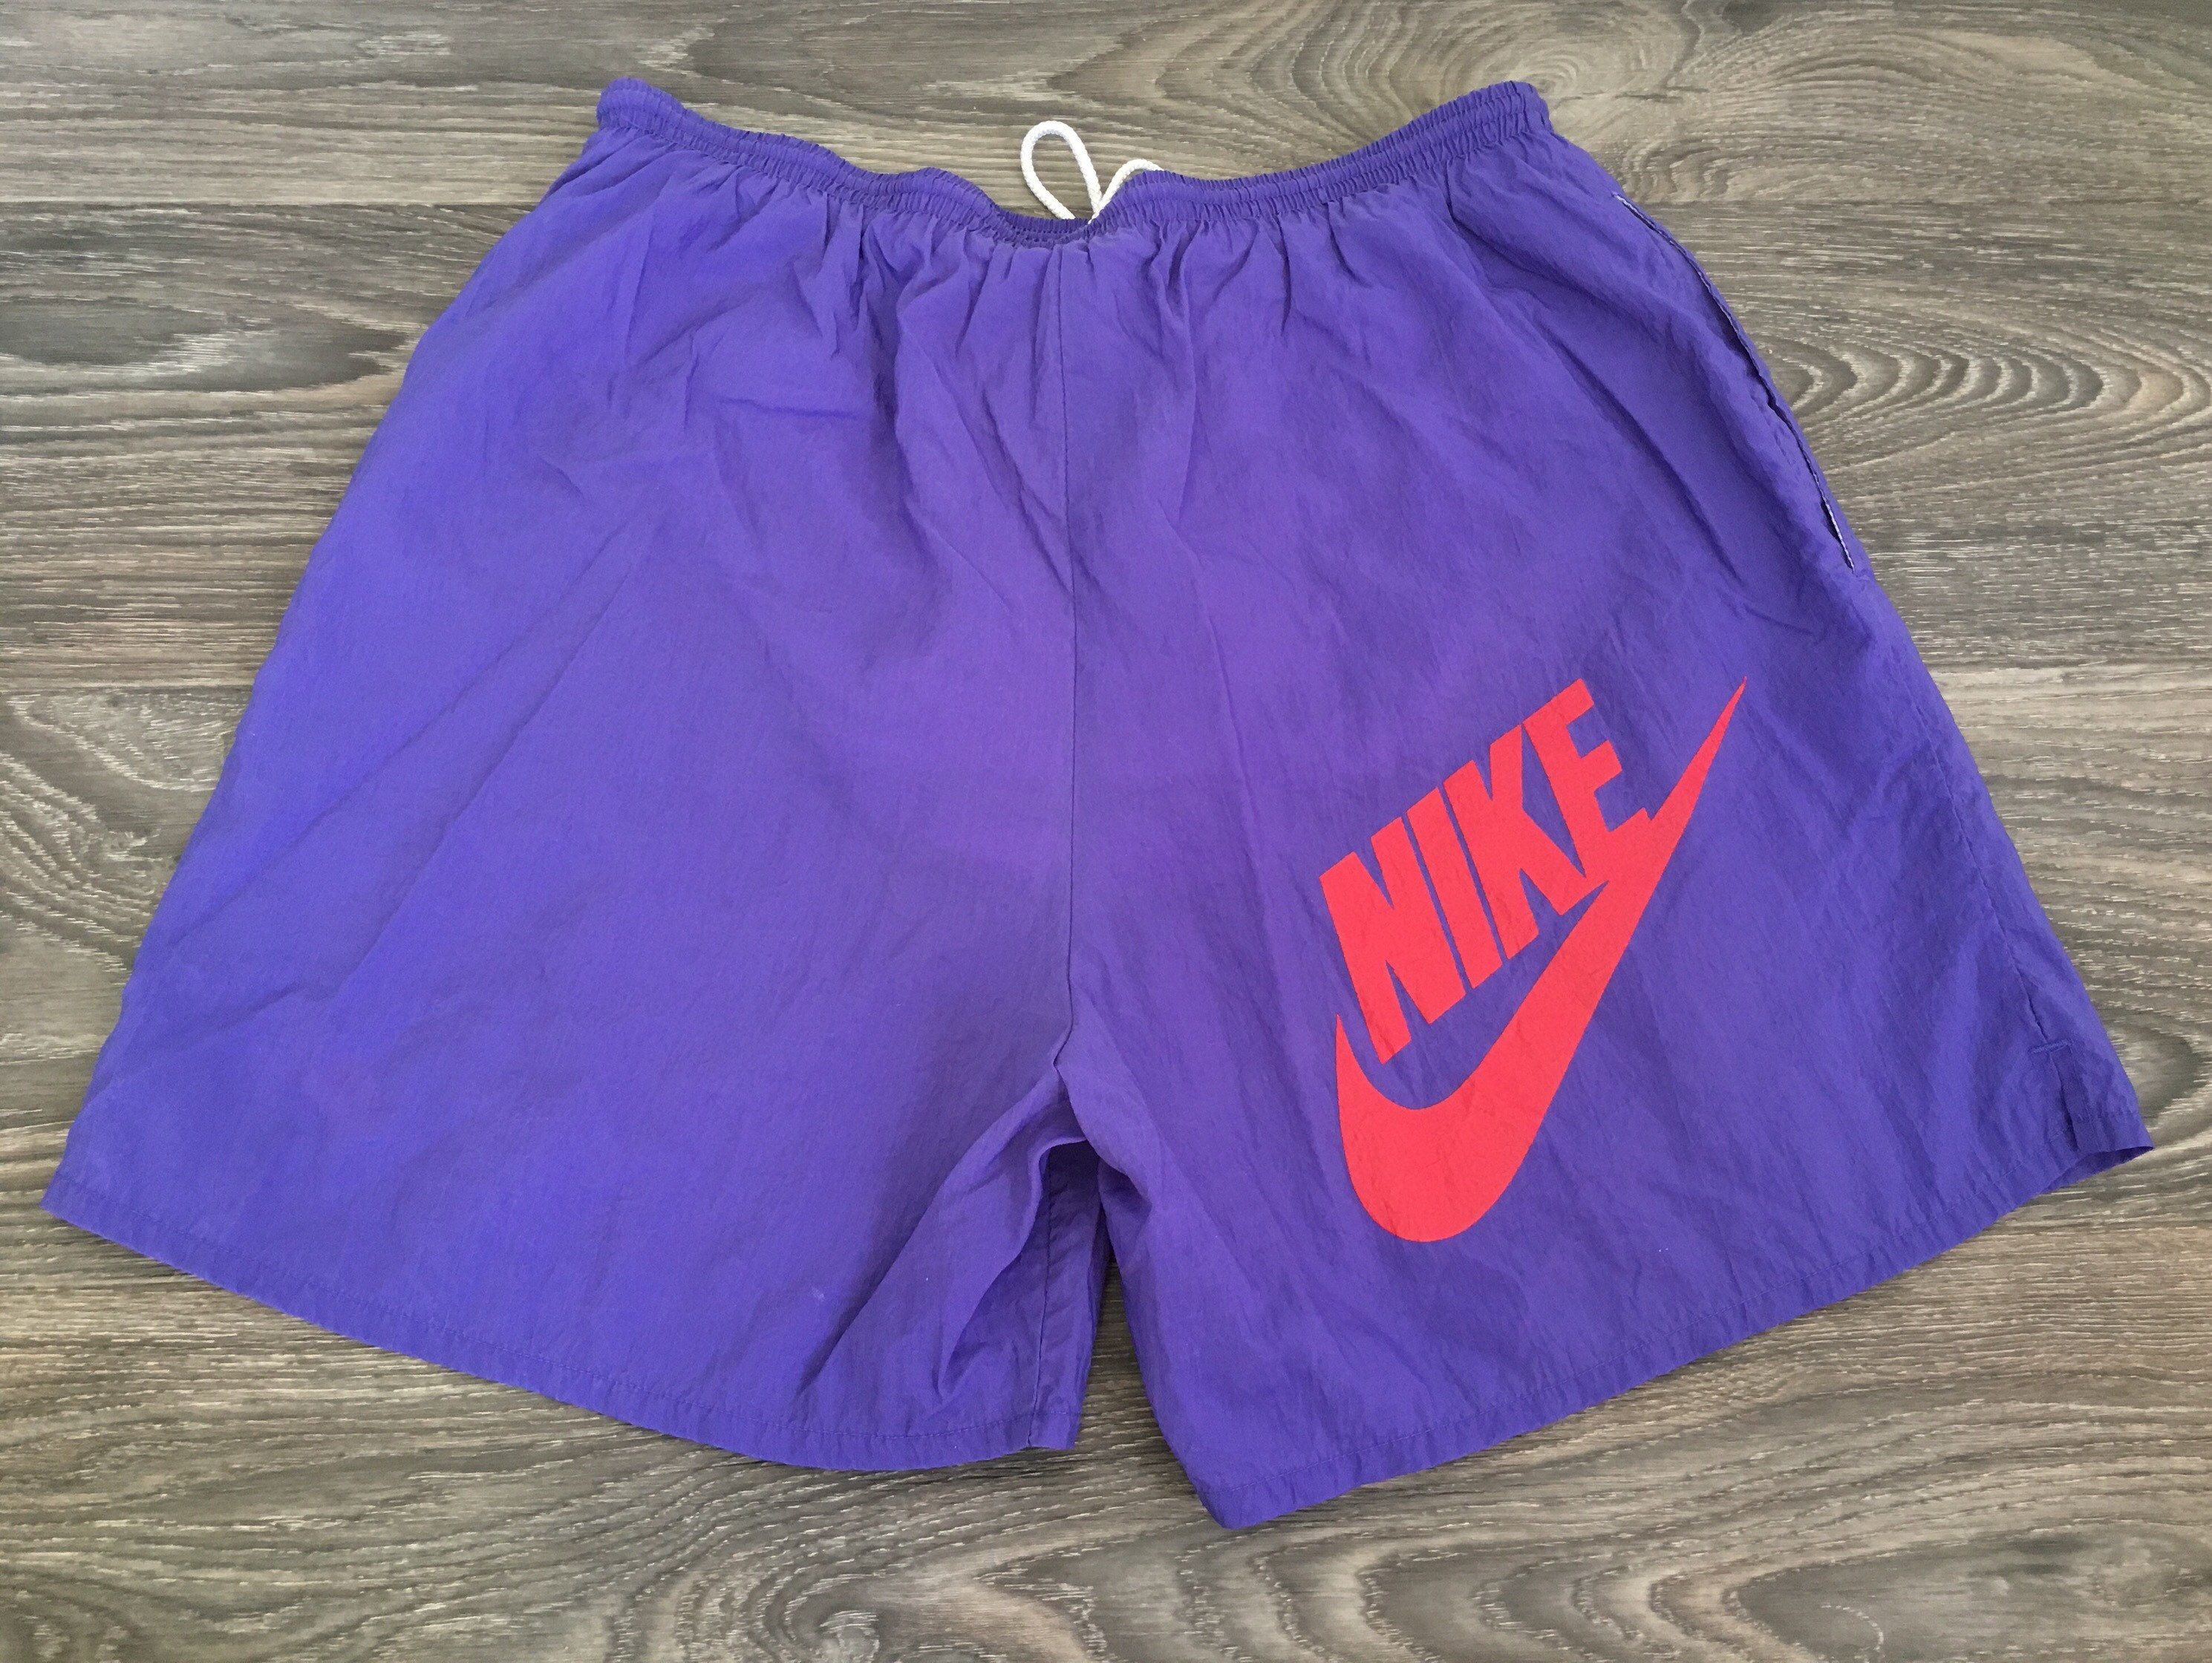 913d0a56c2a50 NIKE Shorts Vintage 80s 90's Nylon Running Neon Purple Grey Tag Shorts  Dance Sport Workout Big logo Size Large by sweetVTGtshirt on Etsy